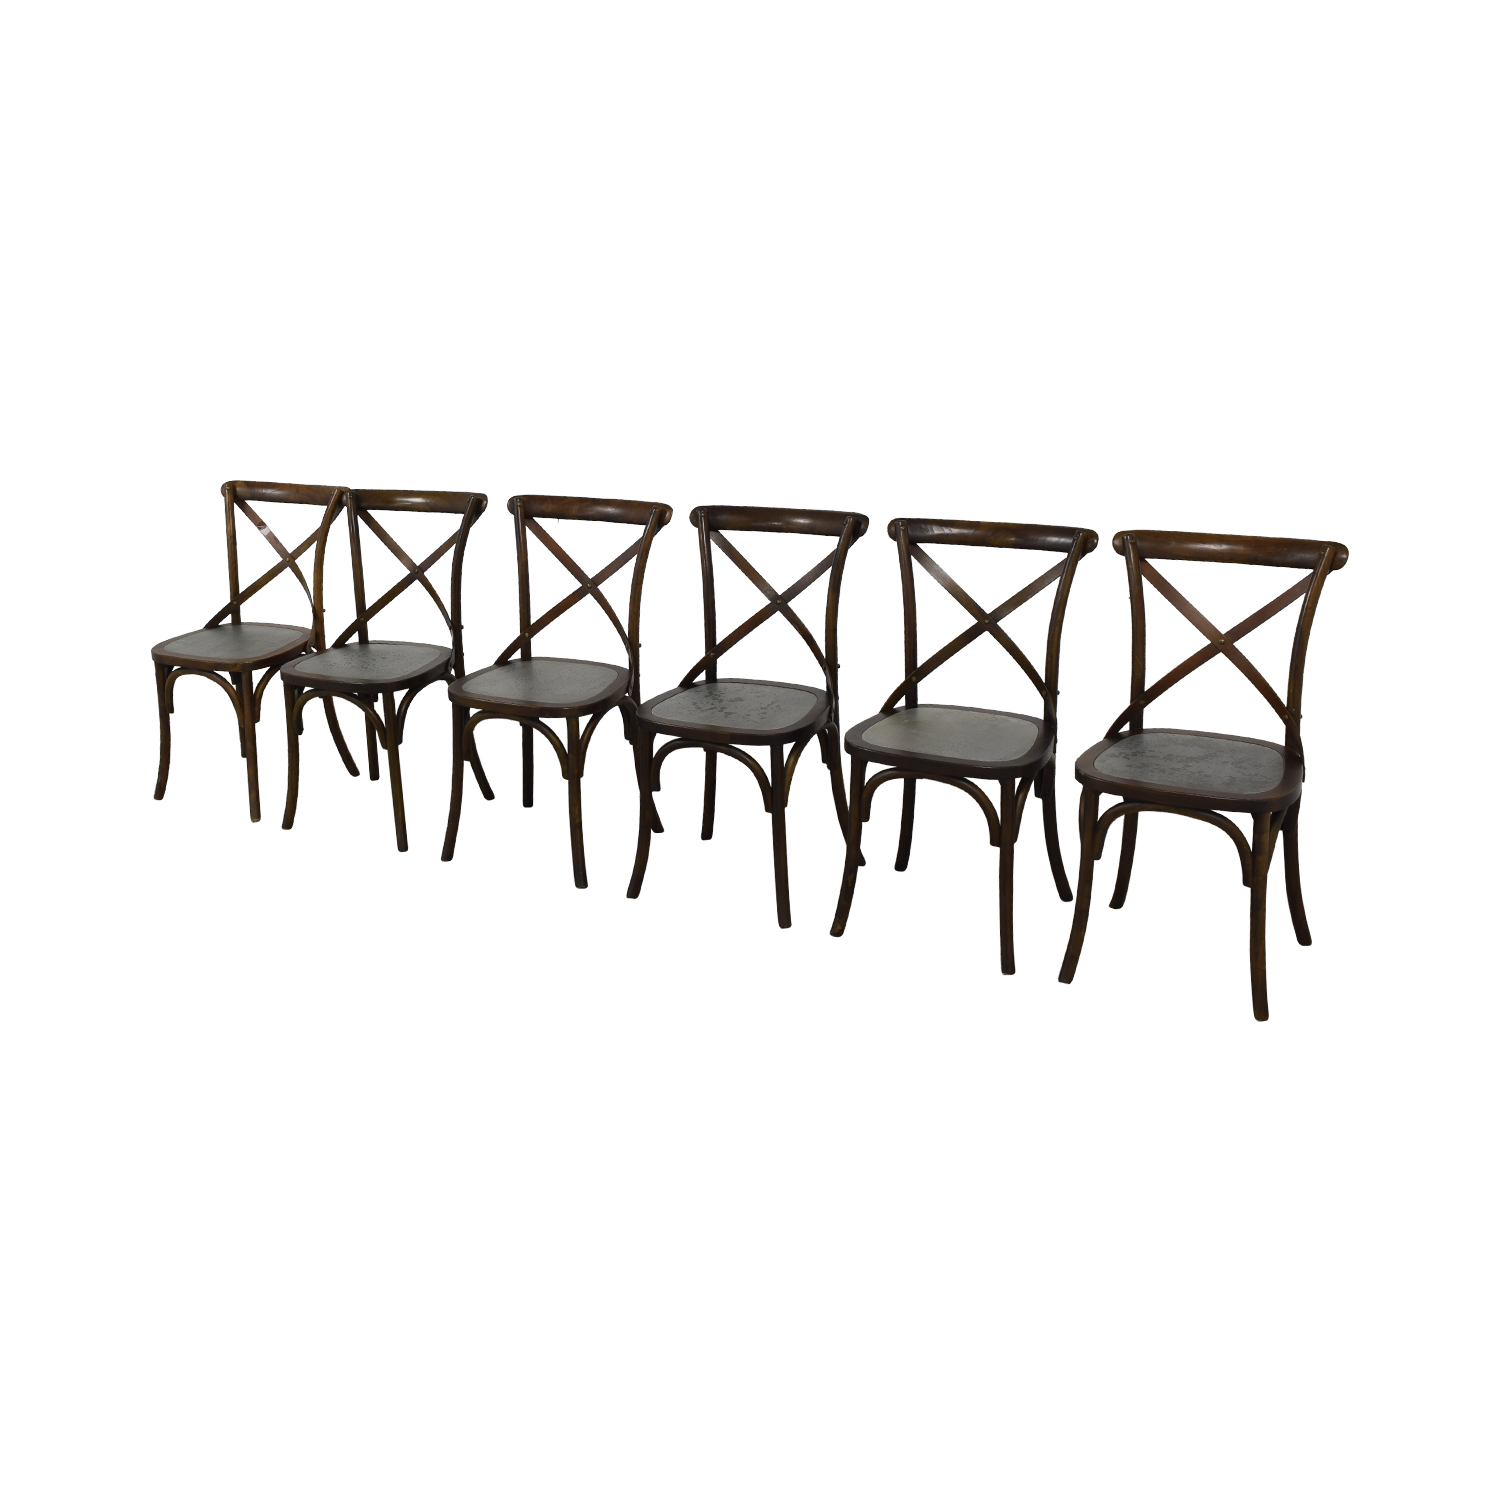 Sitcom Furniture Sitcom Furniture Wood and Metal Dining Chairs used